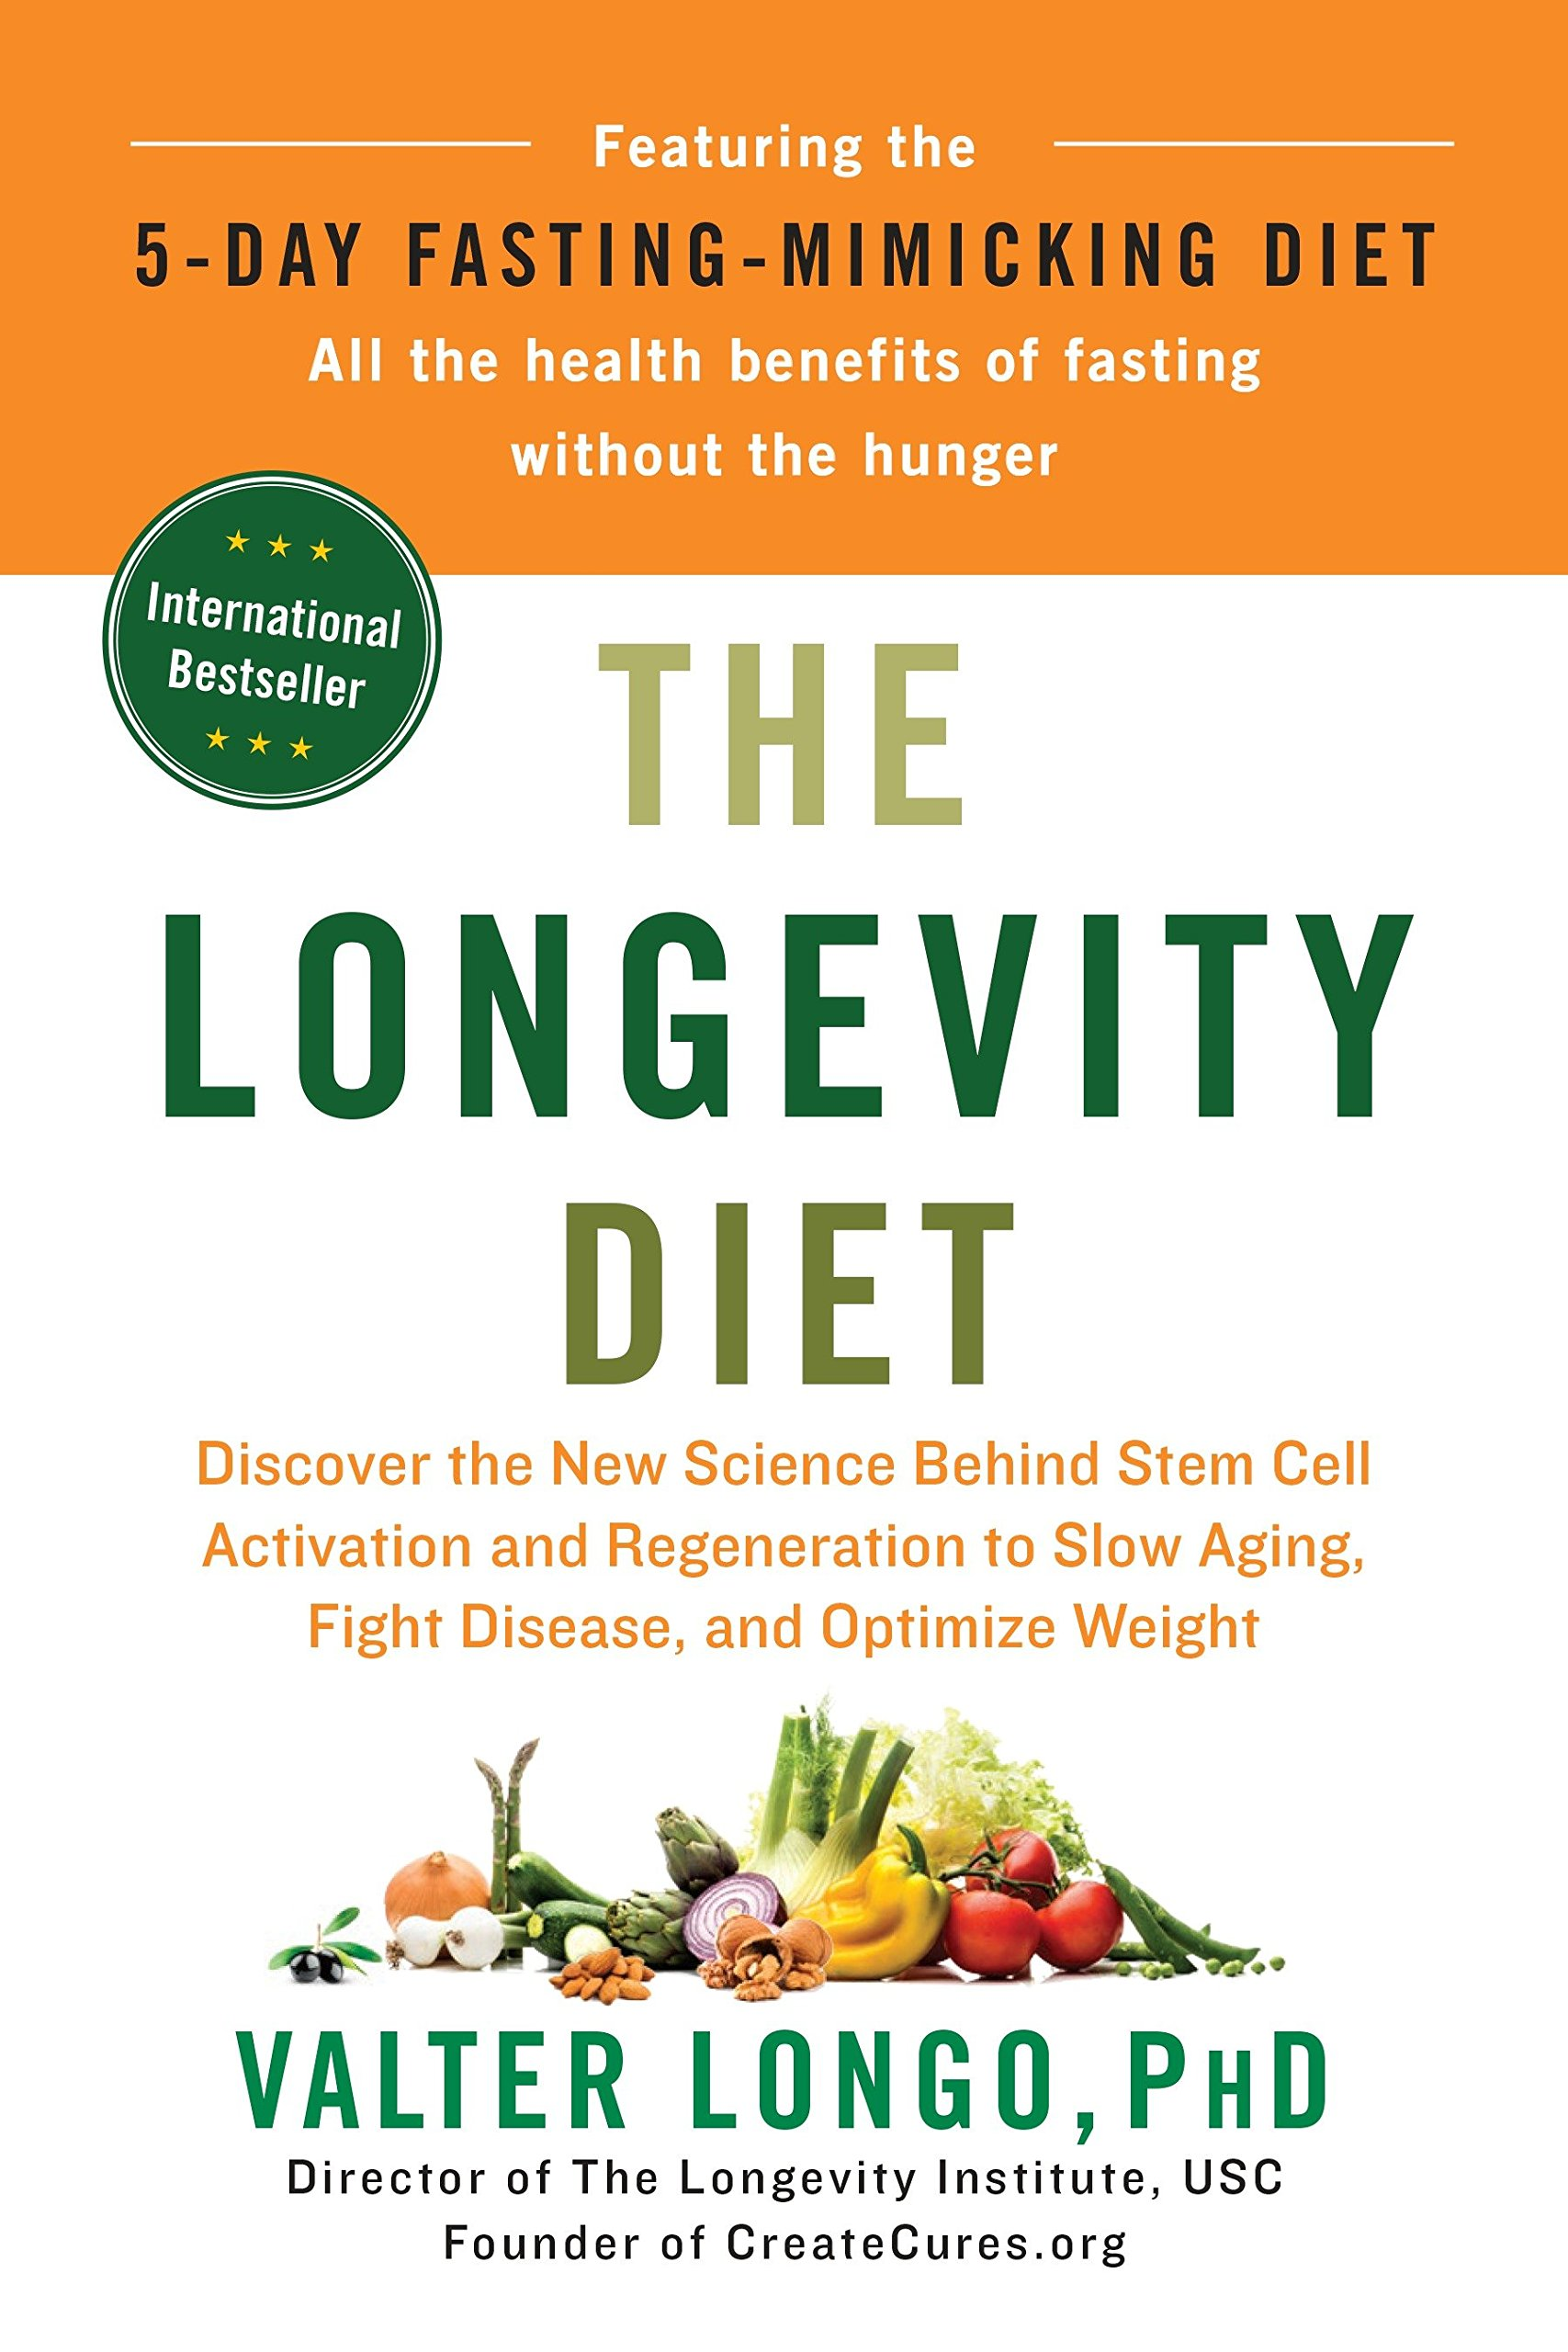 The Longevity Diet: Discover the New Science Behind Stem Cell Activation and Regeneration to Slow Aging, Fight Disease, and Optimize Weight by Avery